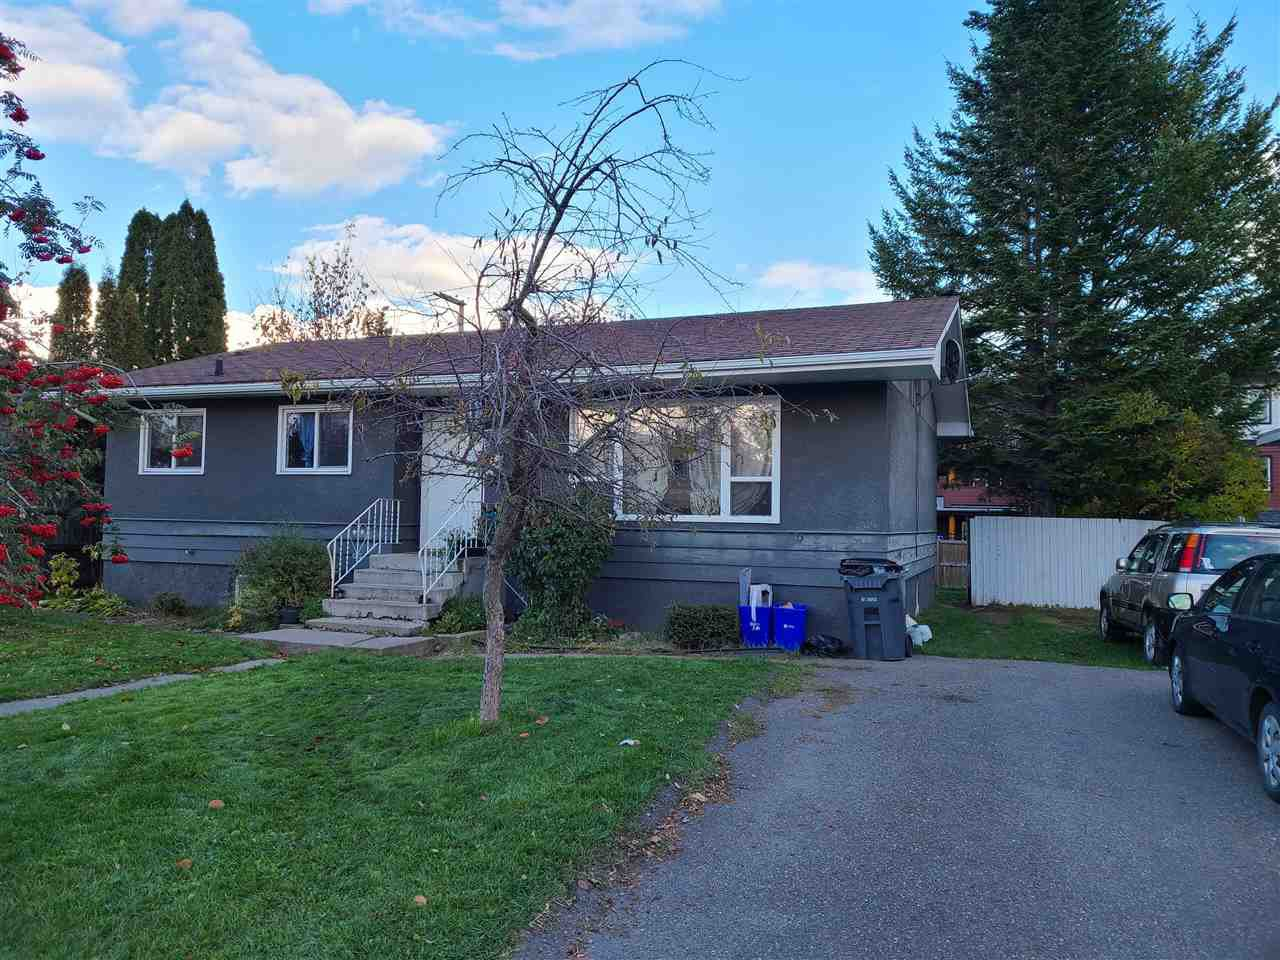 """Main Photo: 1798 TAMARACK Street in Prince George: Van Bow House for sale in """"VAN BOW"""" (PG City Central (Zone 72))  : MLS®# R2529060"""